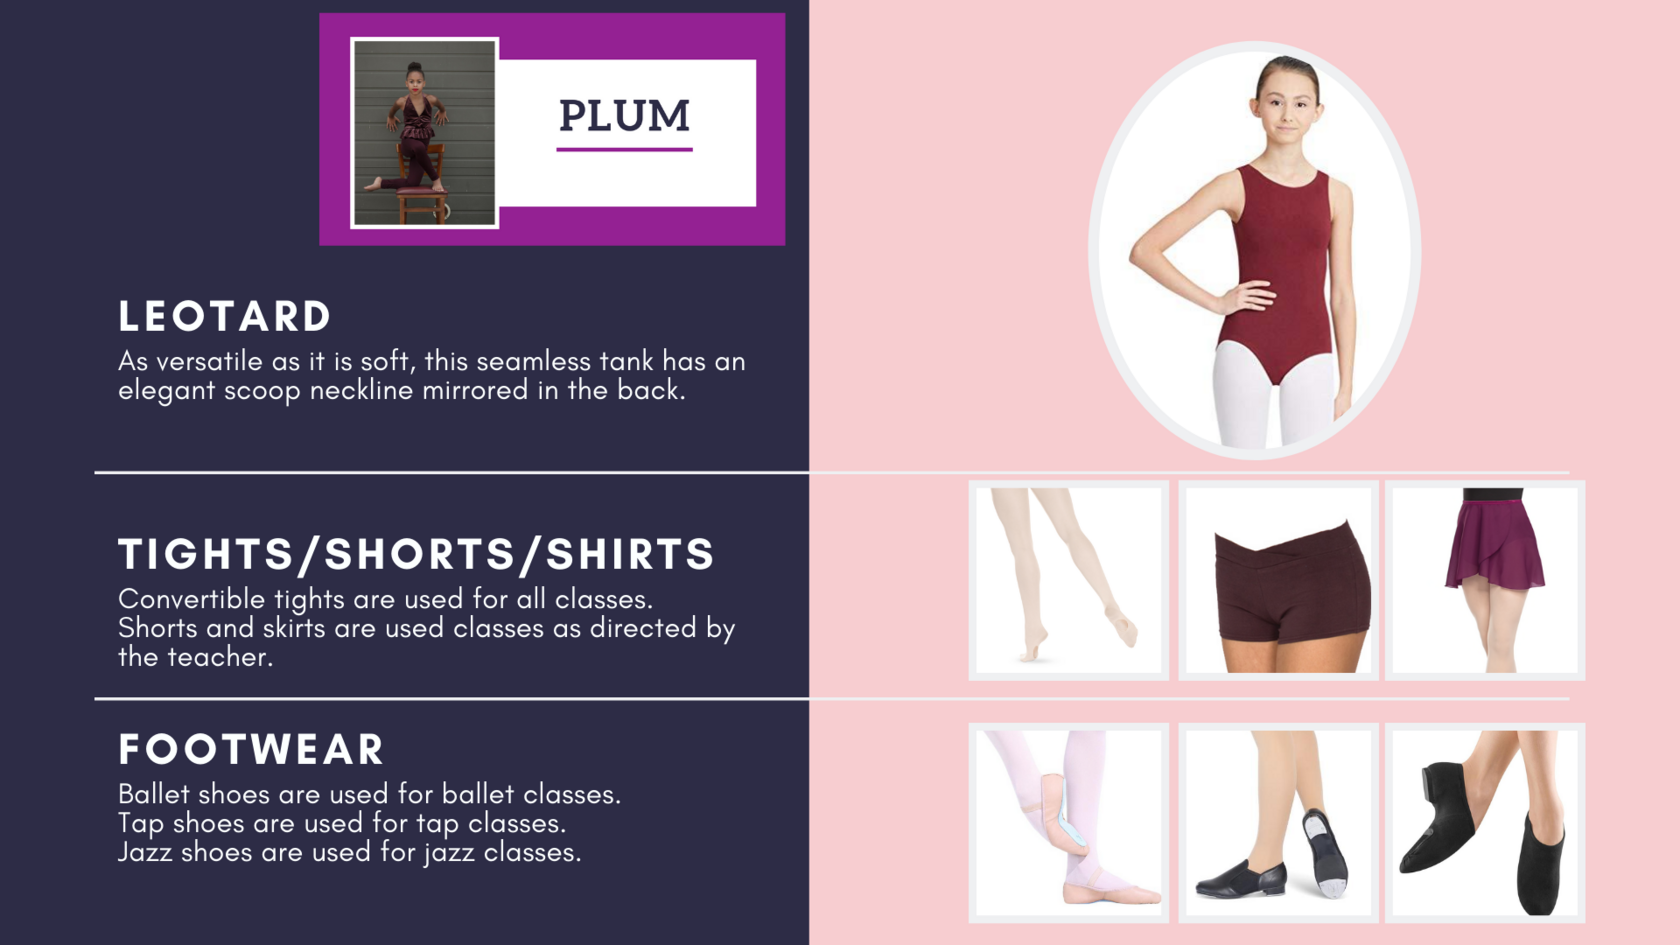 Plum Uniform